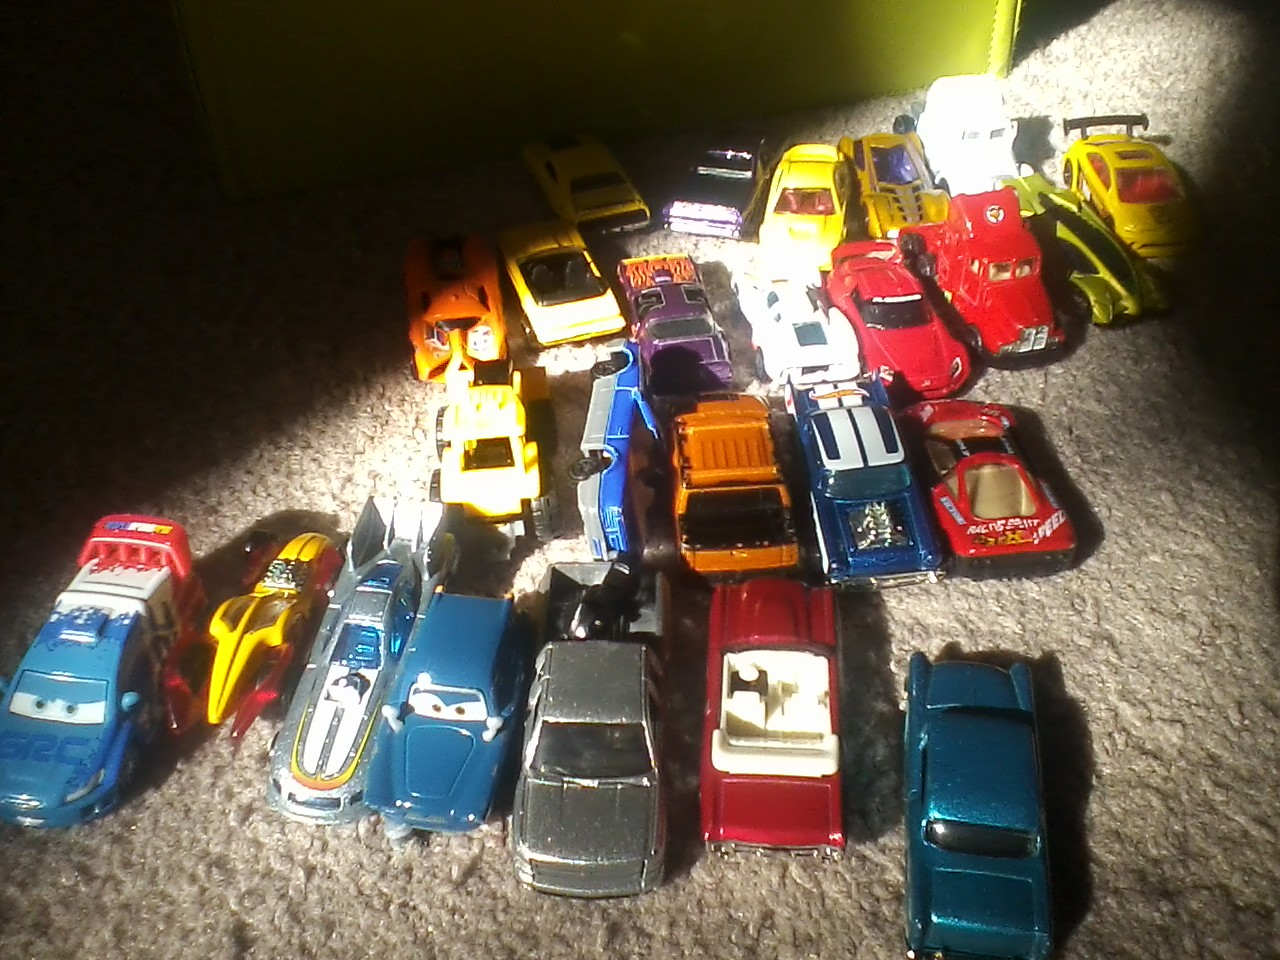 A small portion of our car collection